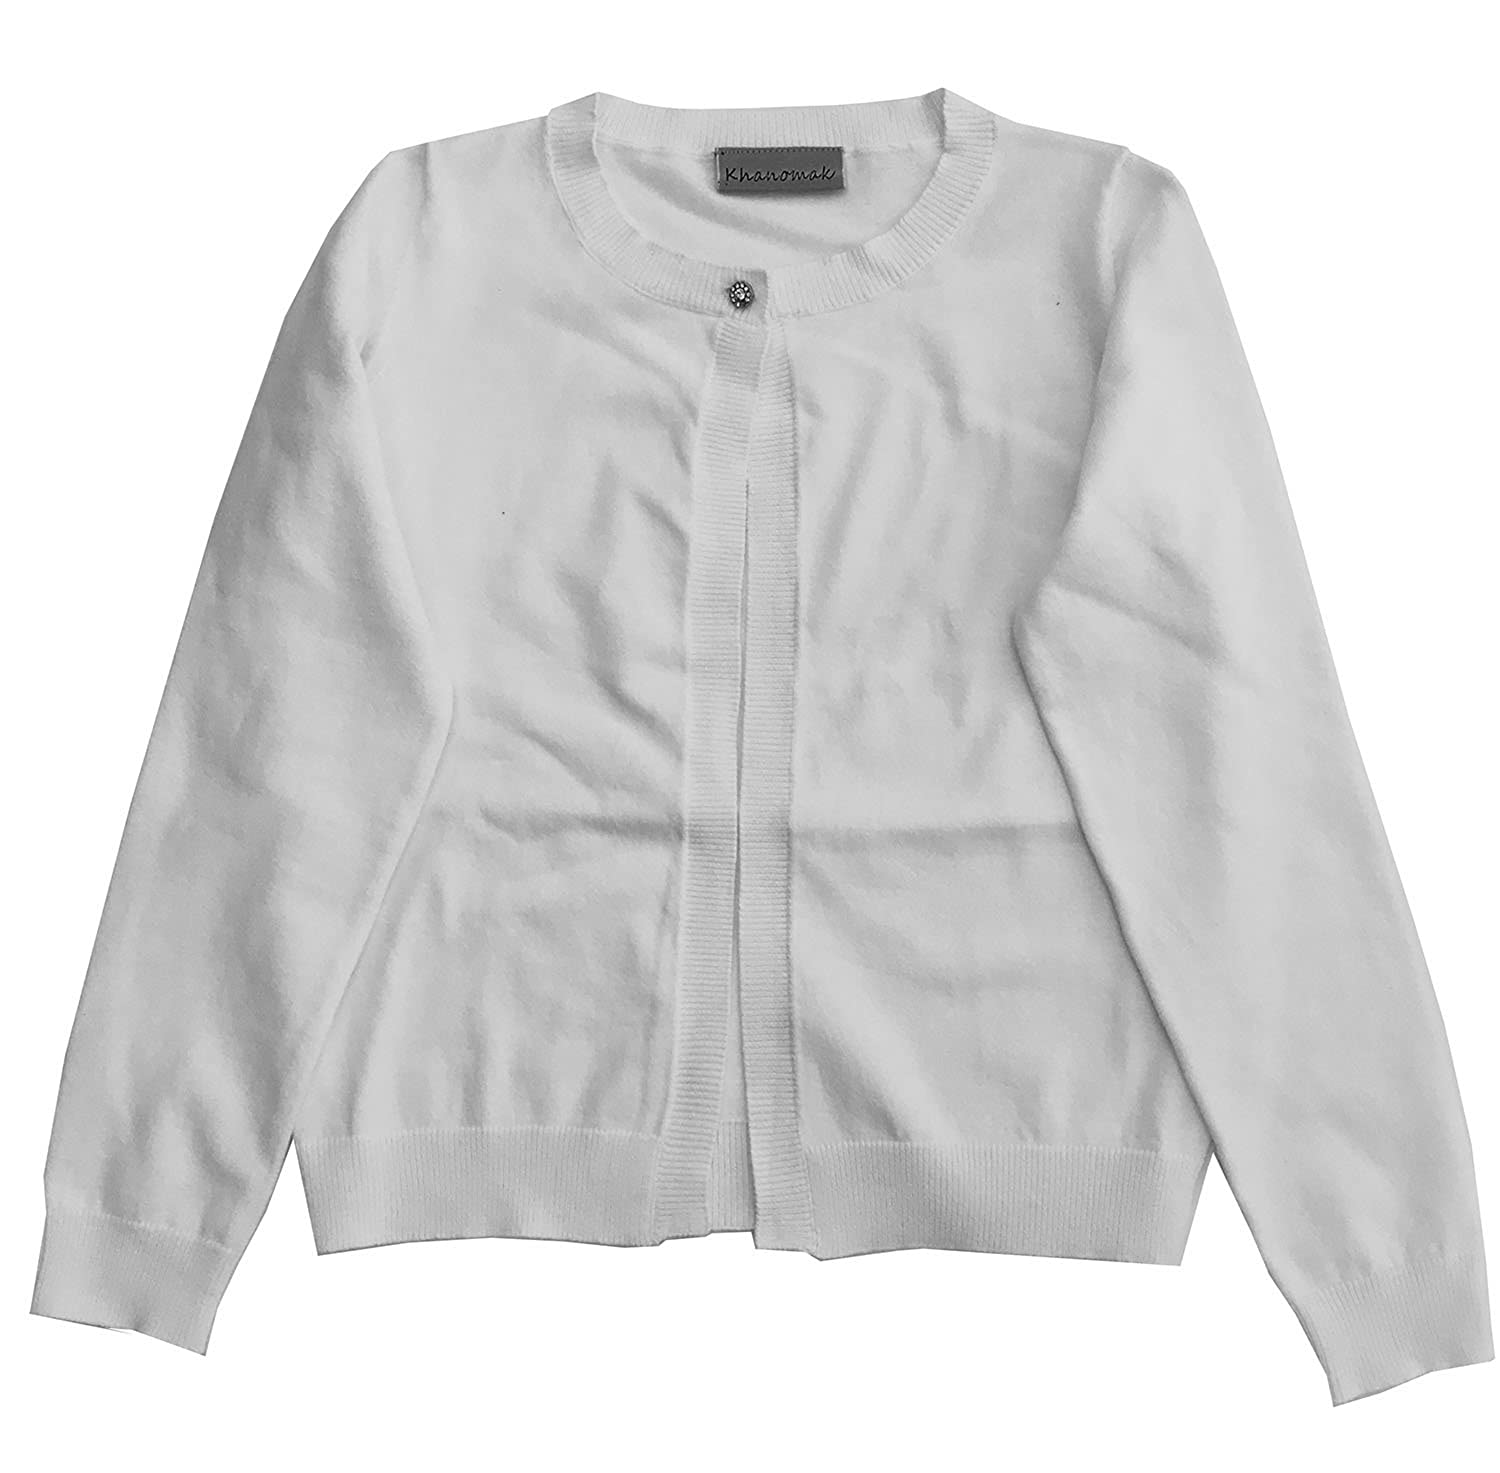 Hollywood Star Fashion Khanomak Kids Girls Cropped Shrug Cardigan Sweater (Sizes 3T- 14 Yrs) Kh007